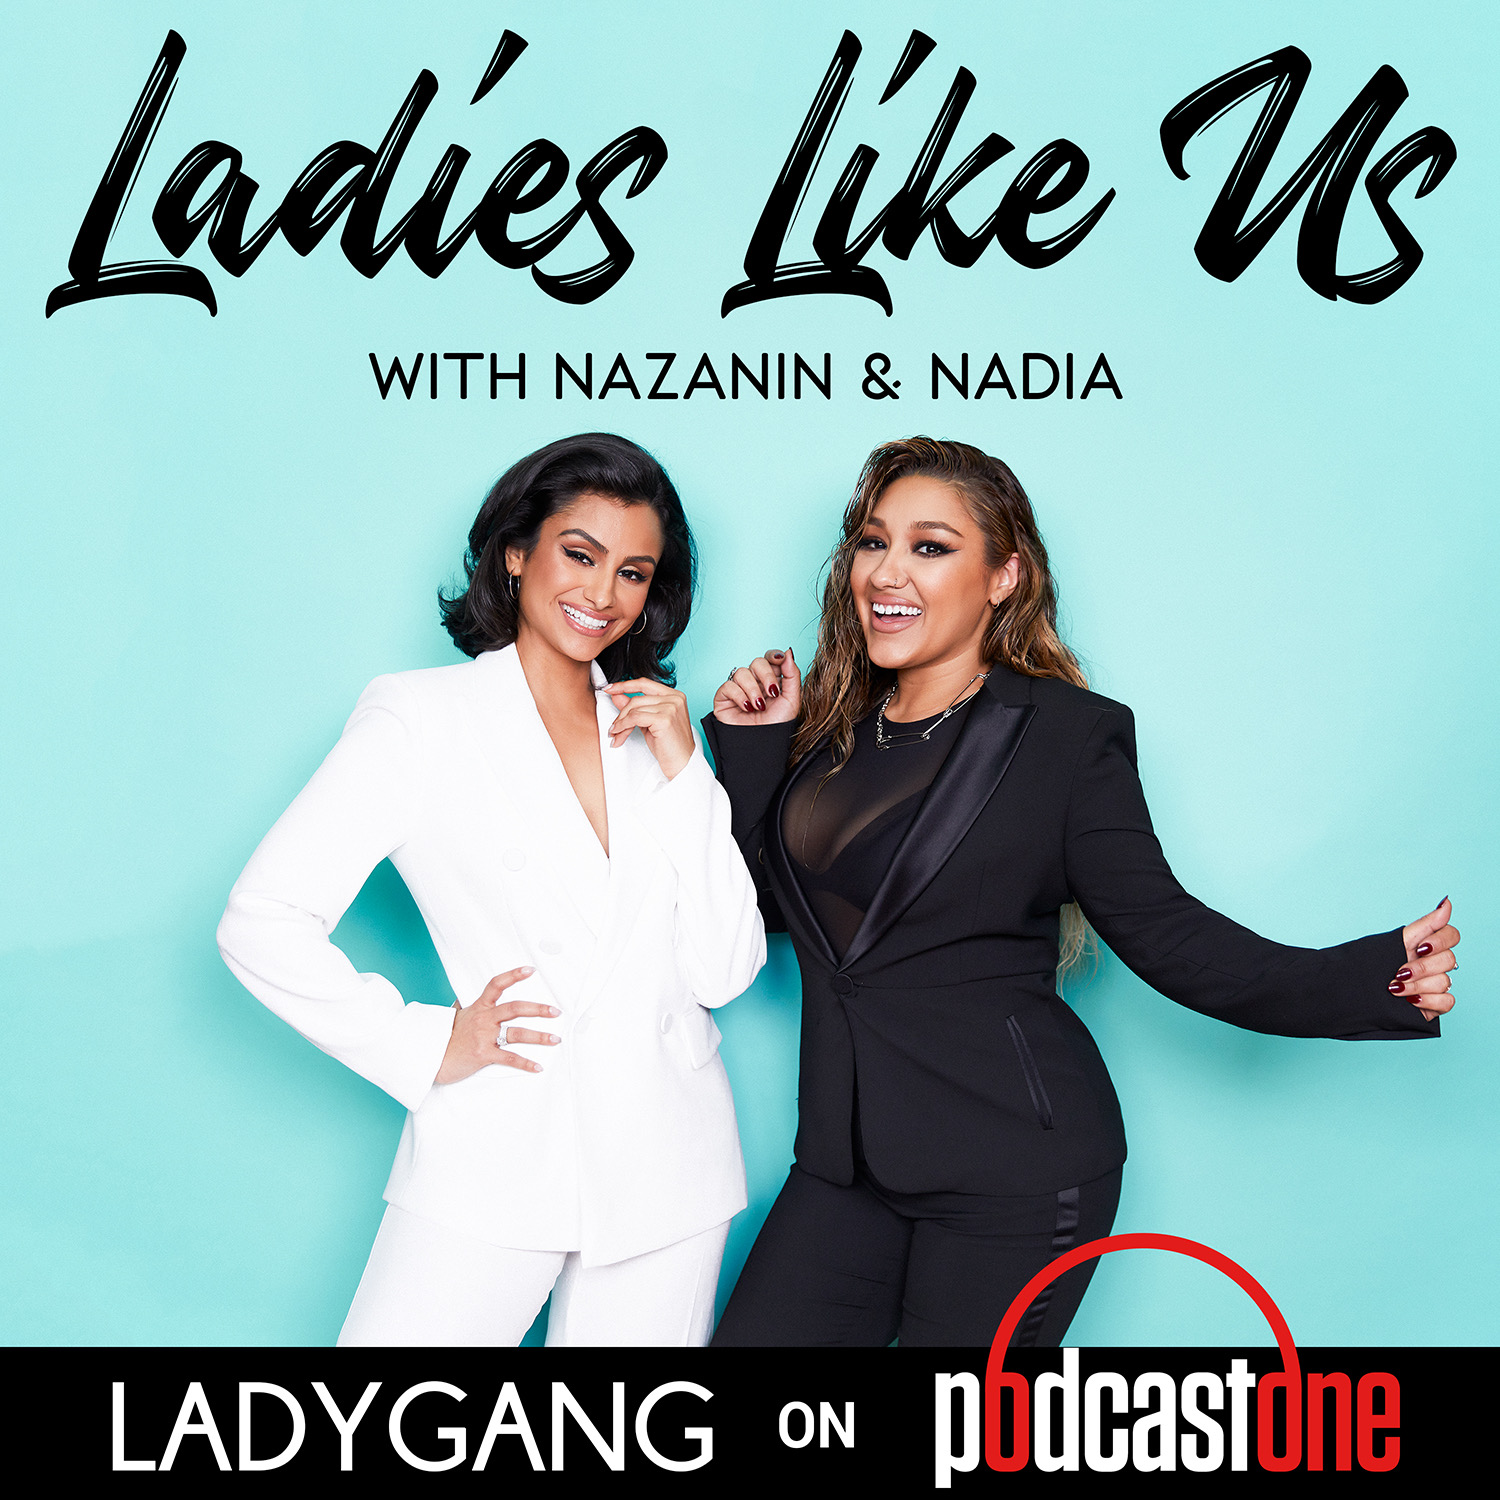 Ladies Like US - Get a relatable and unapologetic view on life, as Nazanin and Nadia provide modern-day women's perspectives on the universal issues we face. Dive into the joys, struggles and laughter around love, friendships, personal principles, double standards, plastic surgery, societal expectations, marriage and more. Plus, special guests will drop by to add their take on these conversations.